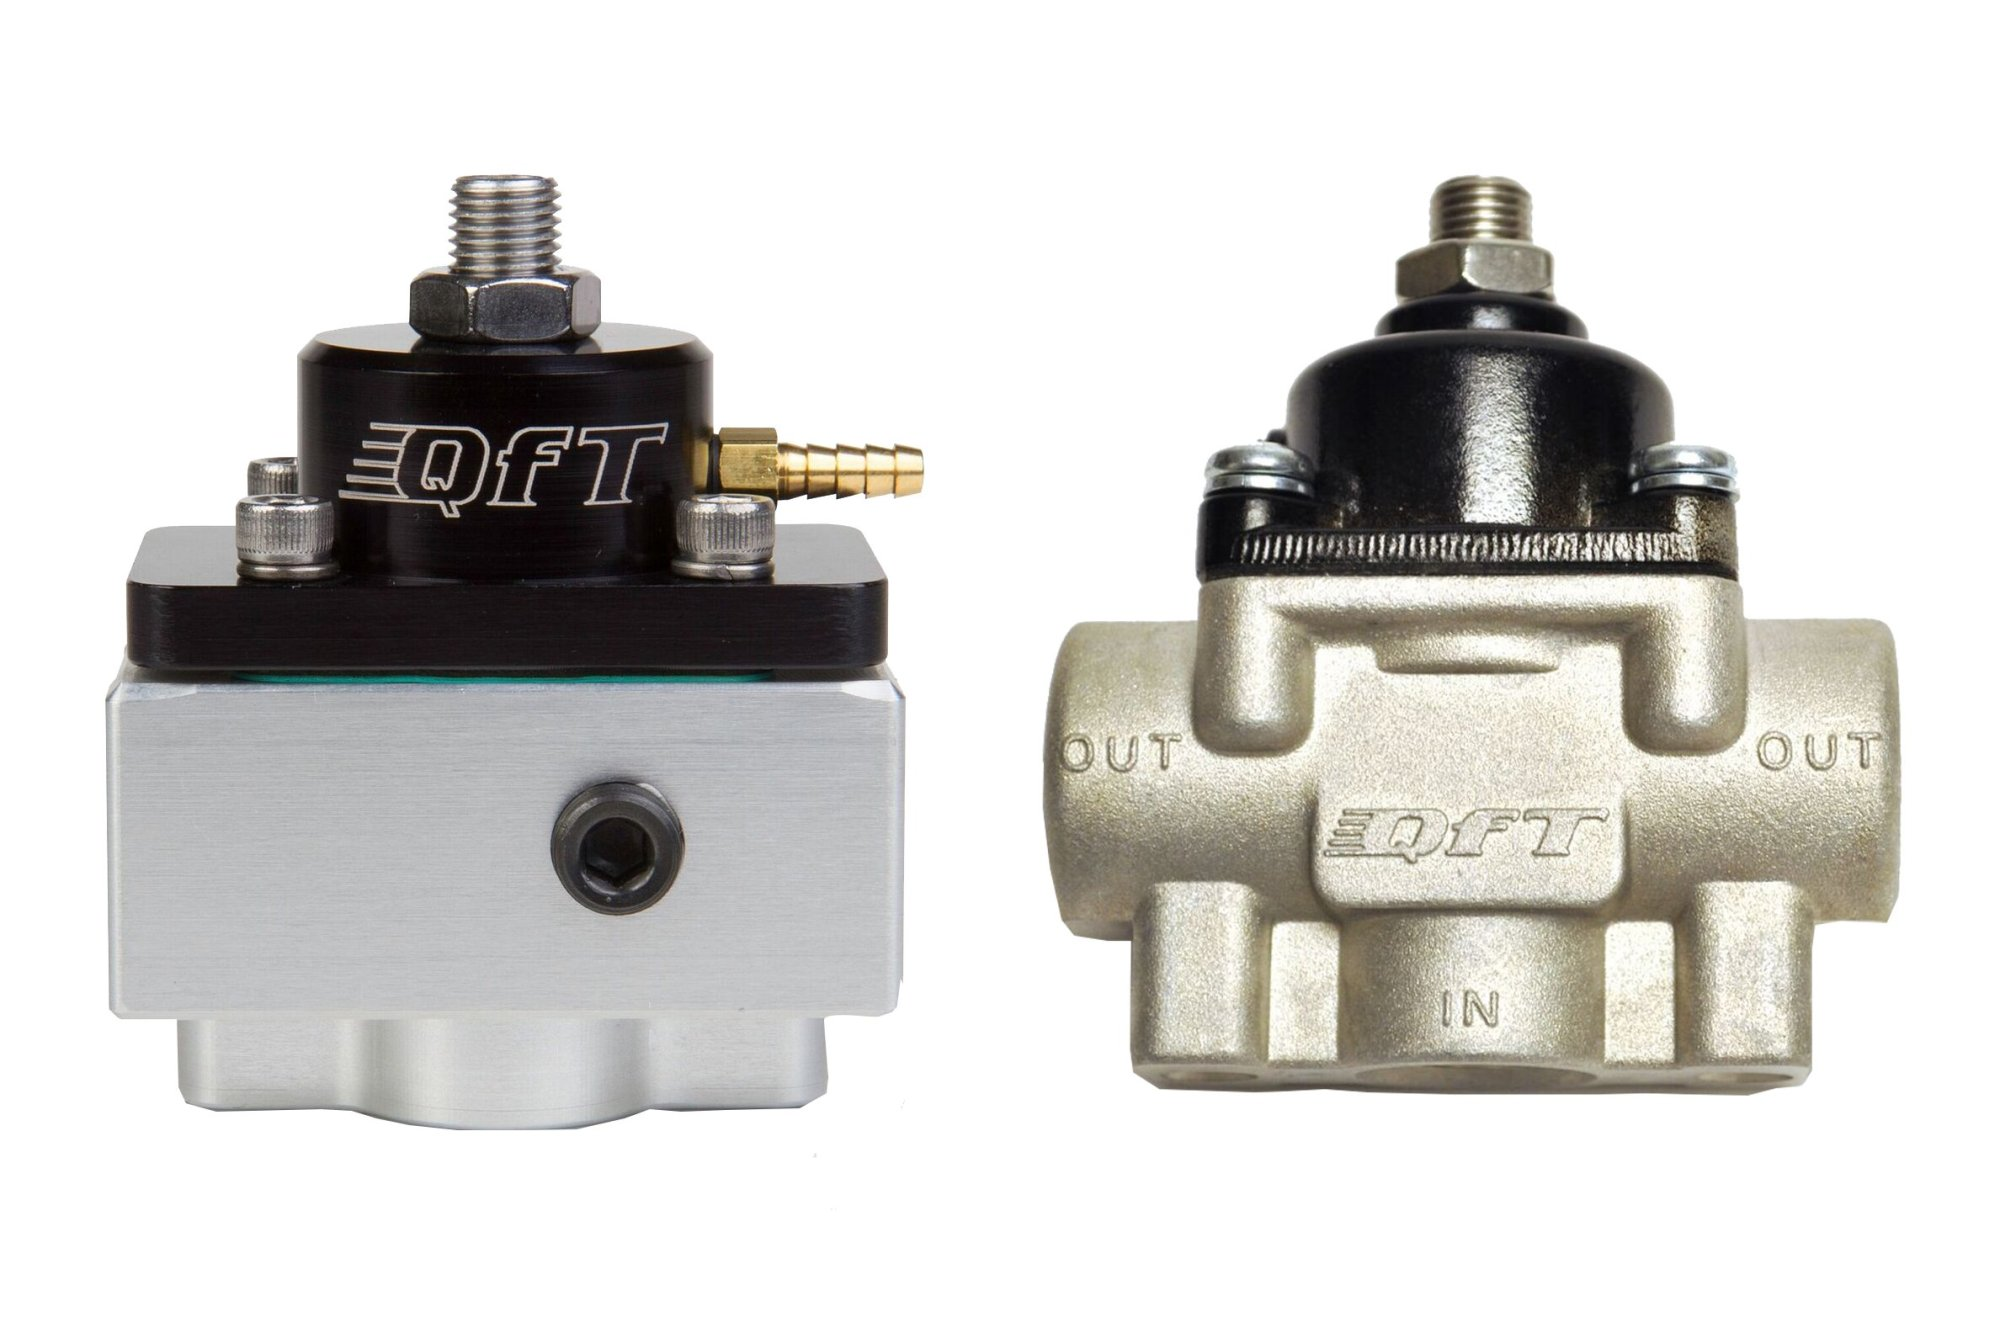 hight resolution of designed specifically for variable displacement belt driven fuel pumps qft s blue coded regulators utilize an idle bypass jet to provide 7 9 psi at wot